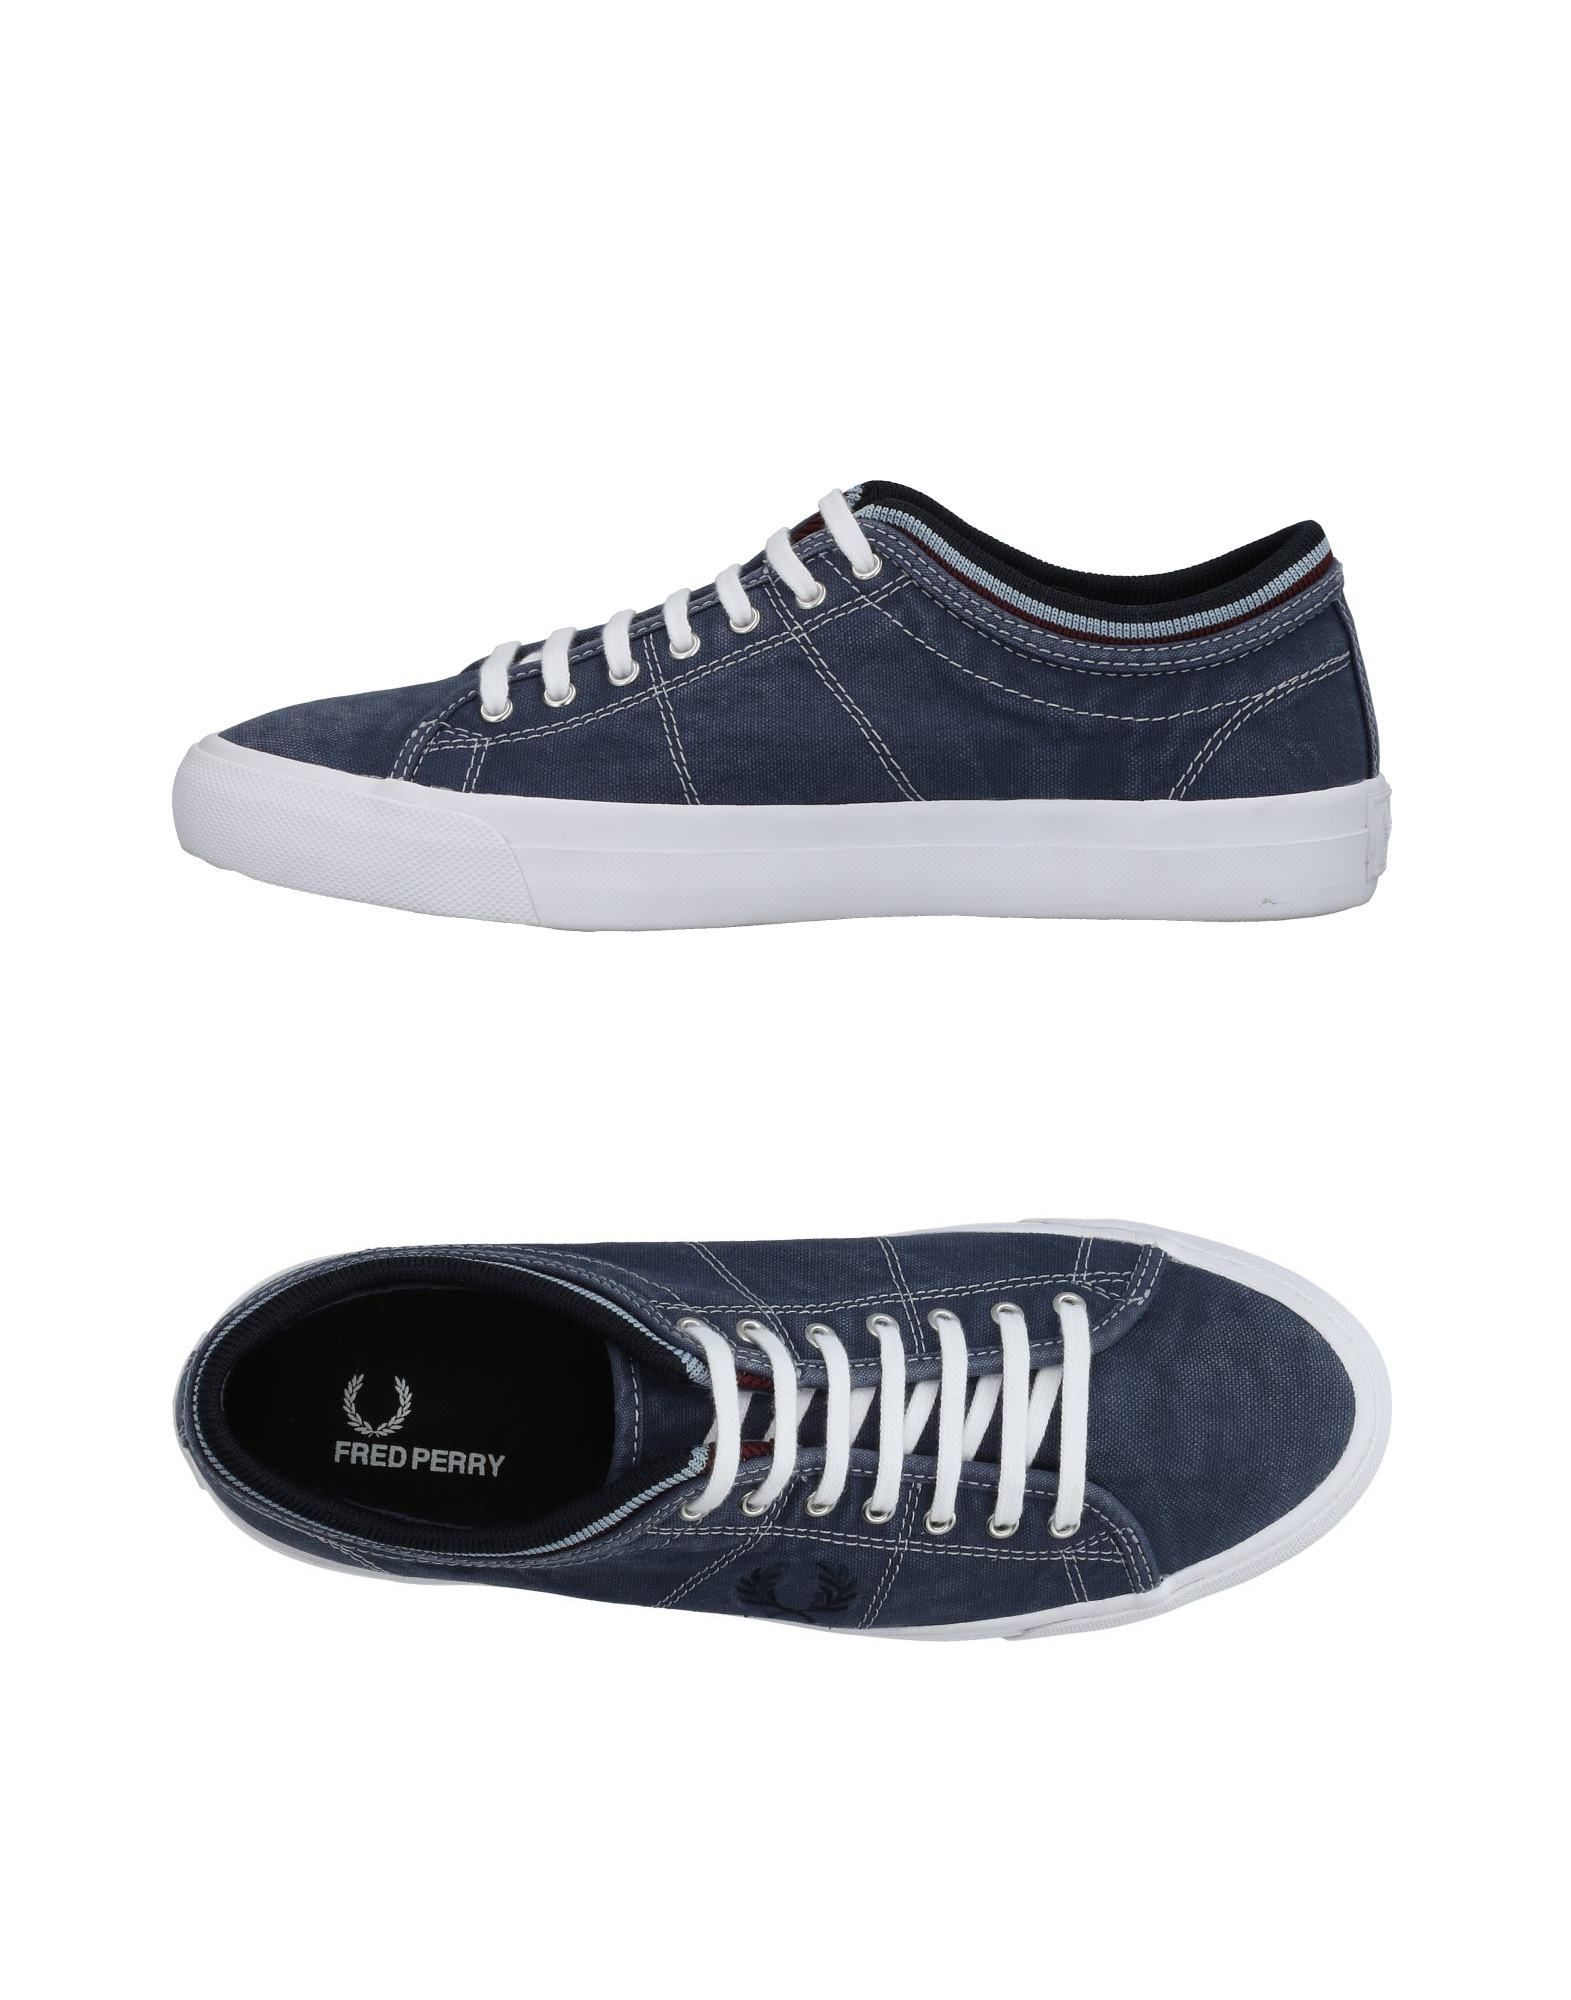 Sneakers Fred Perry Uomo - 11447731LB